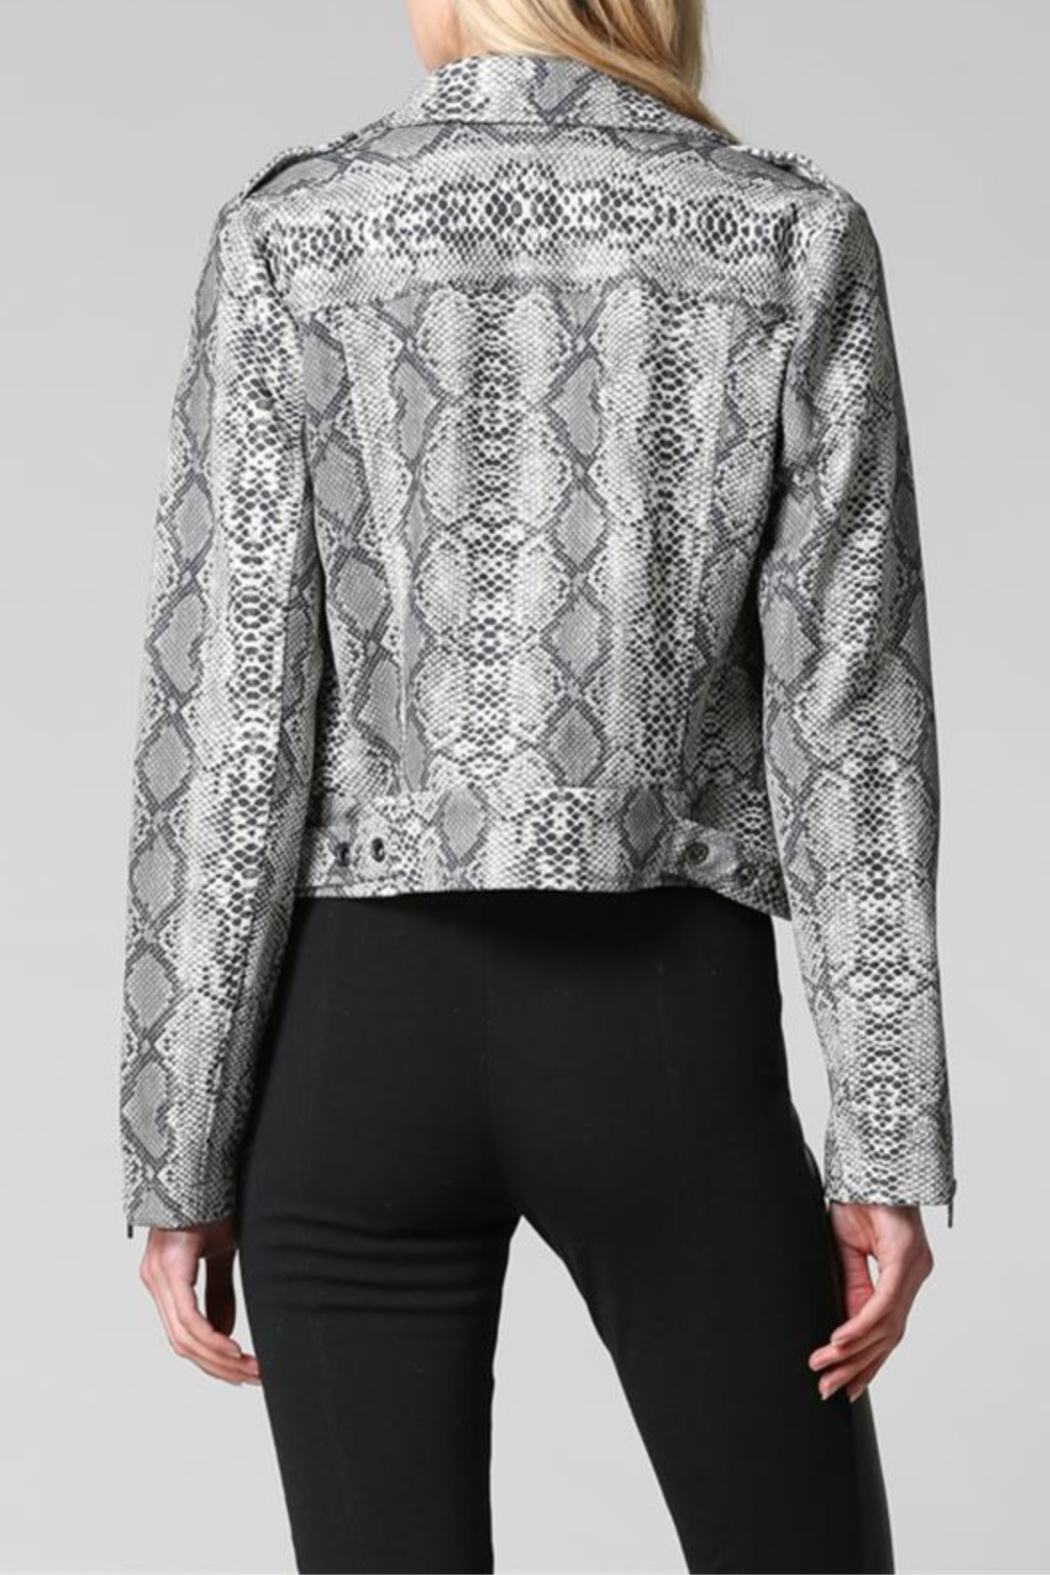 FATE by LFD Snake Print Sueded Moto Jacket - Front Full Image